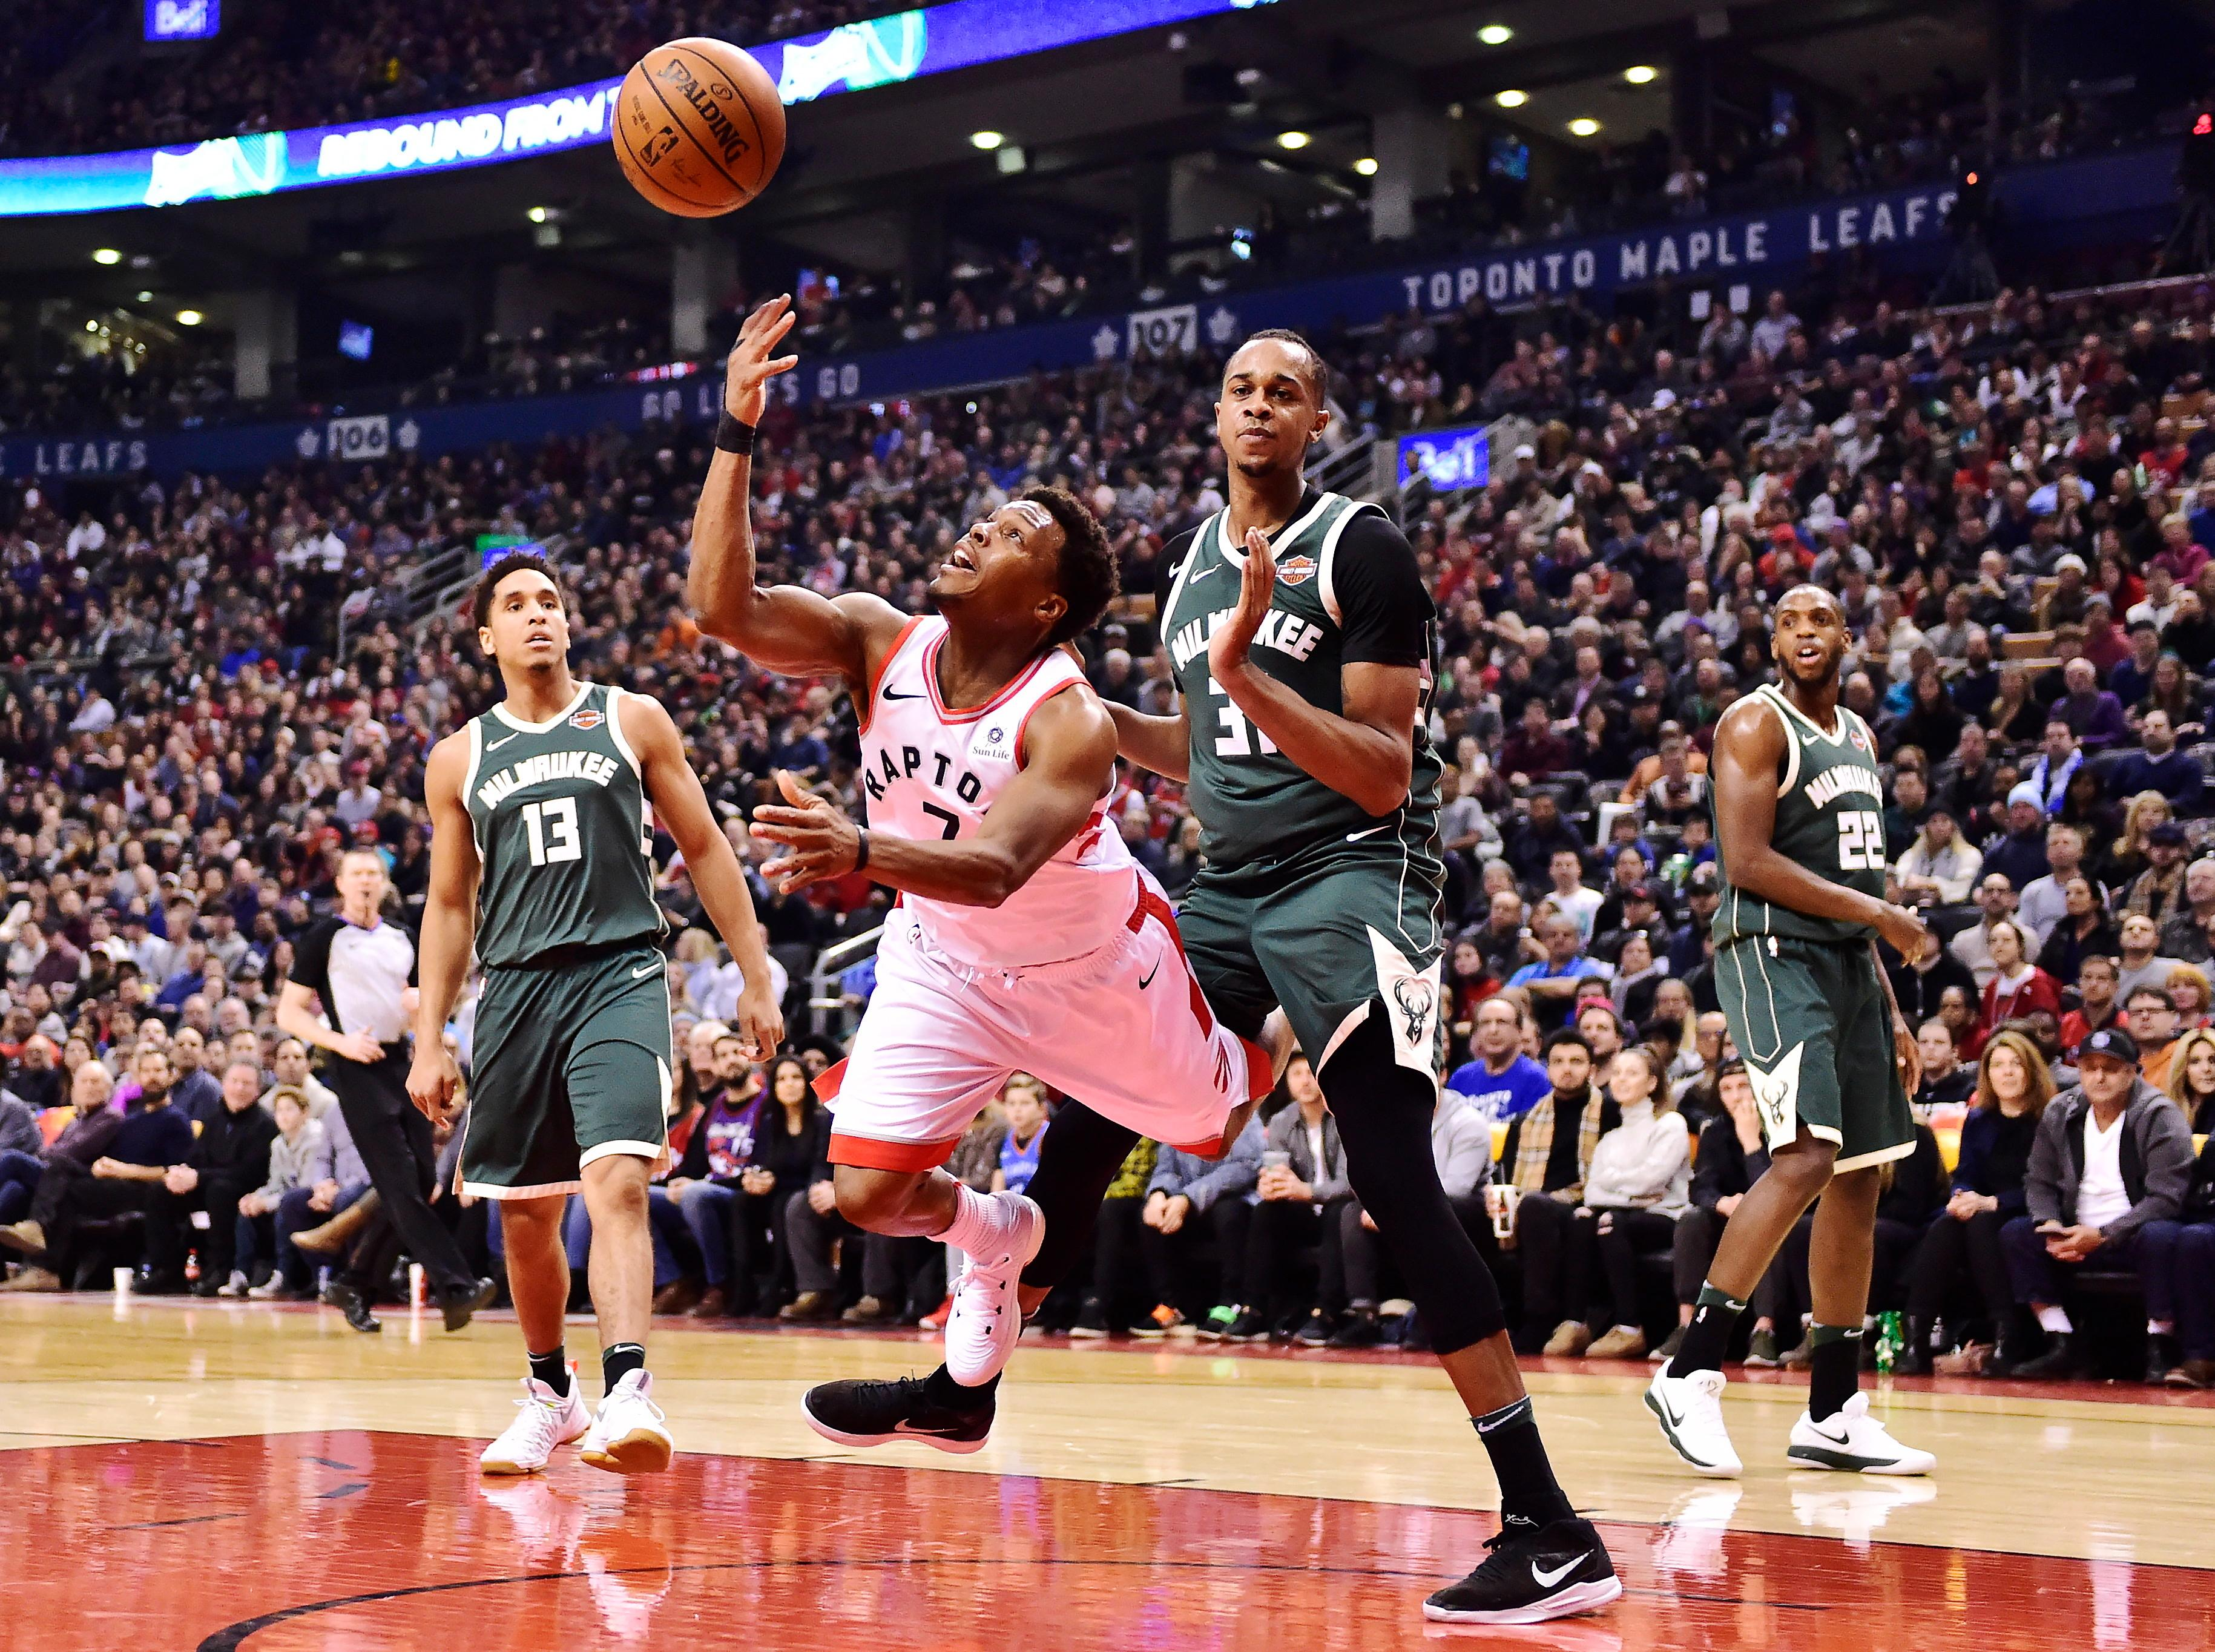 Toronto Raptors guard Kyle Lowry (7) throws up a shot as he is fouled by Milwaukee Bucks forward John Henson (31) during first half action in Toronto on Monday, Jan. 1, 2018. (Frank Gunn/The Canadian Press via AP)